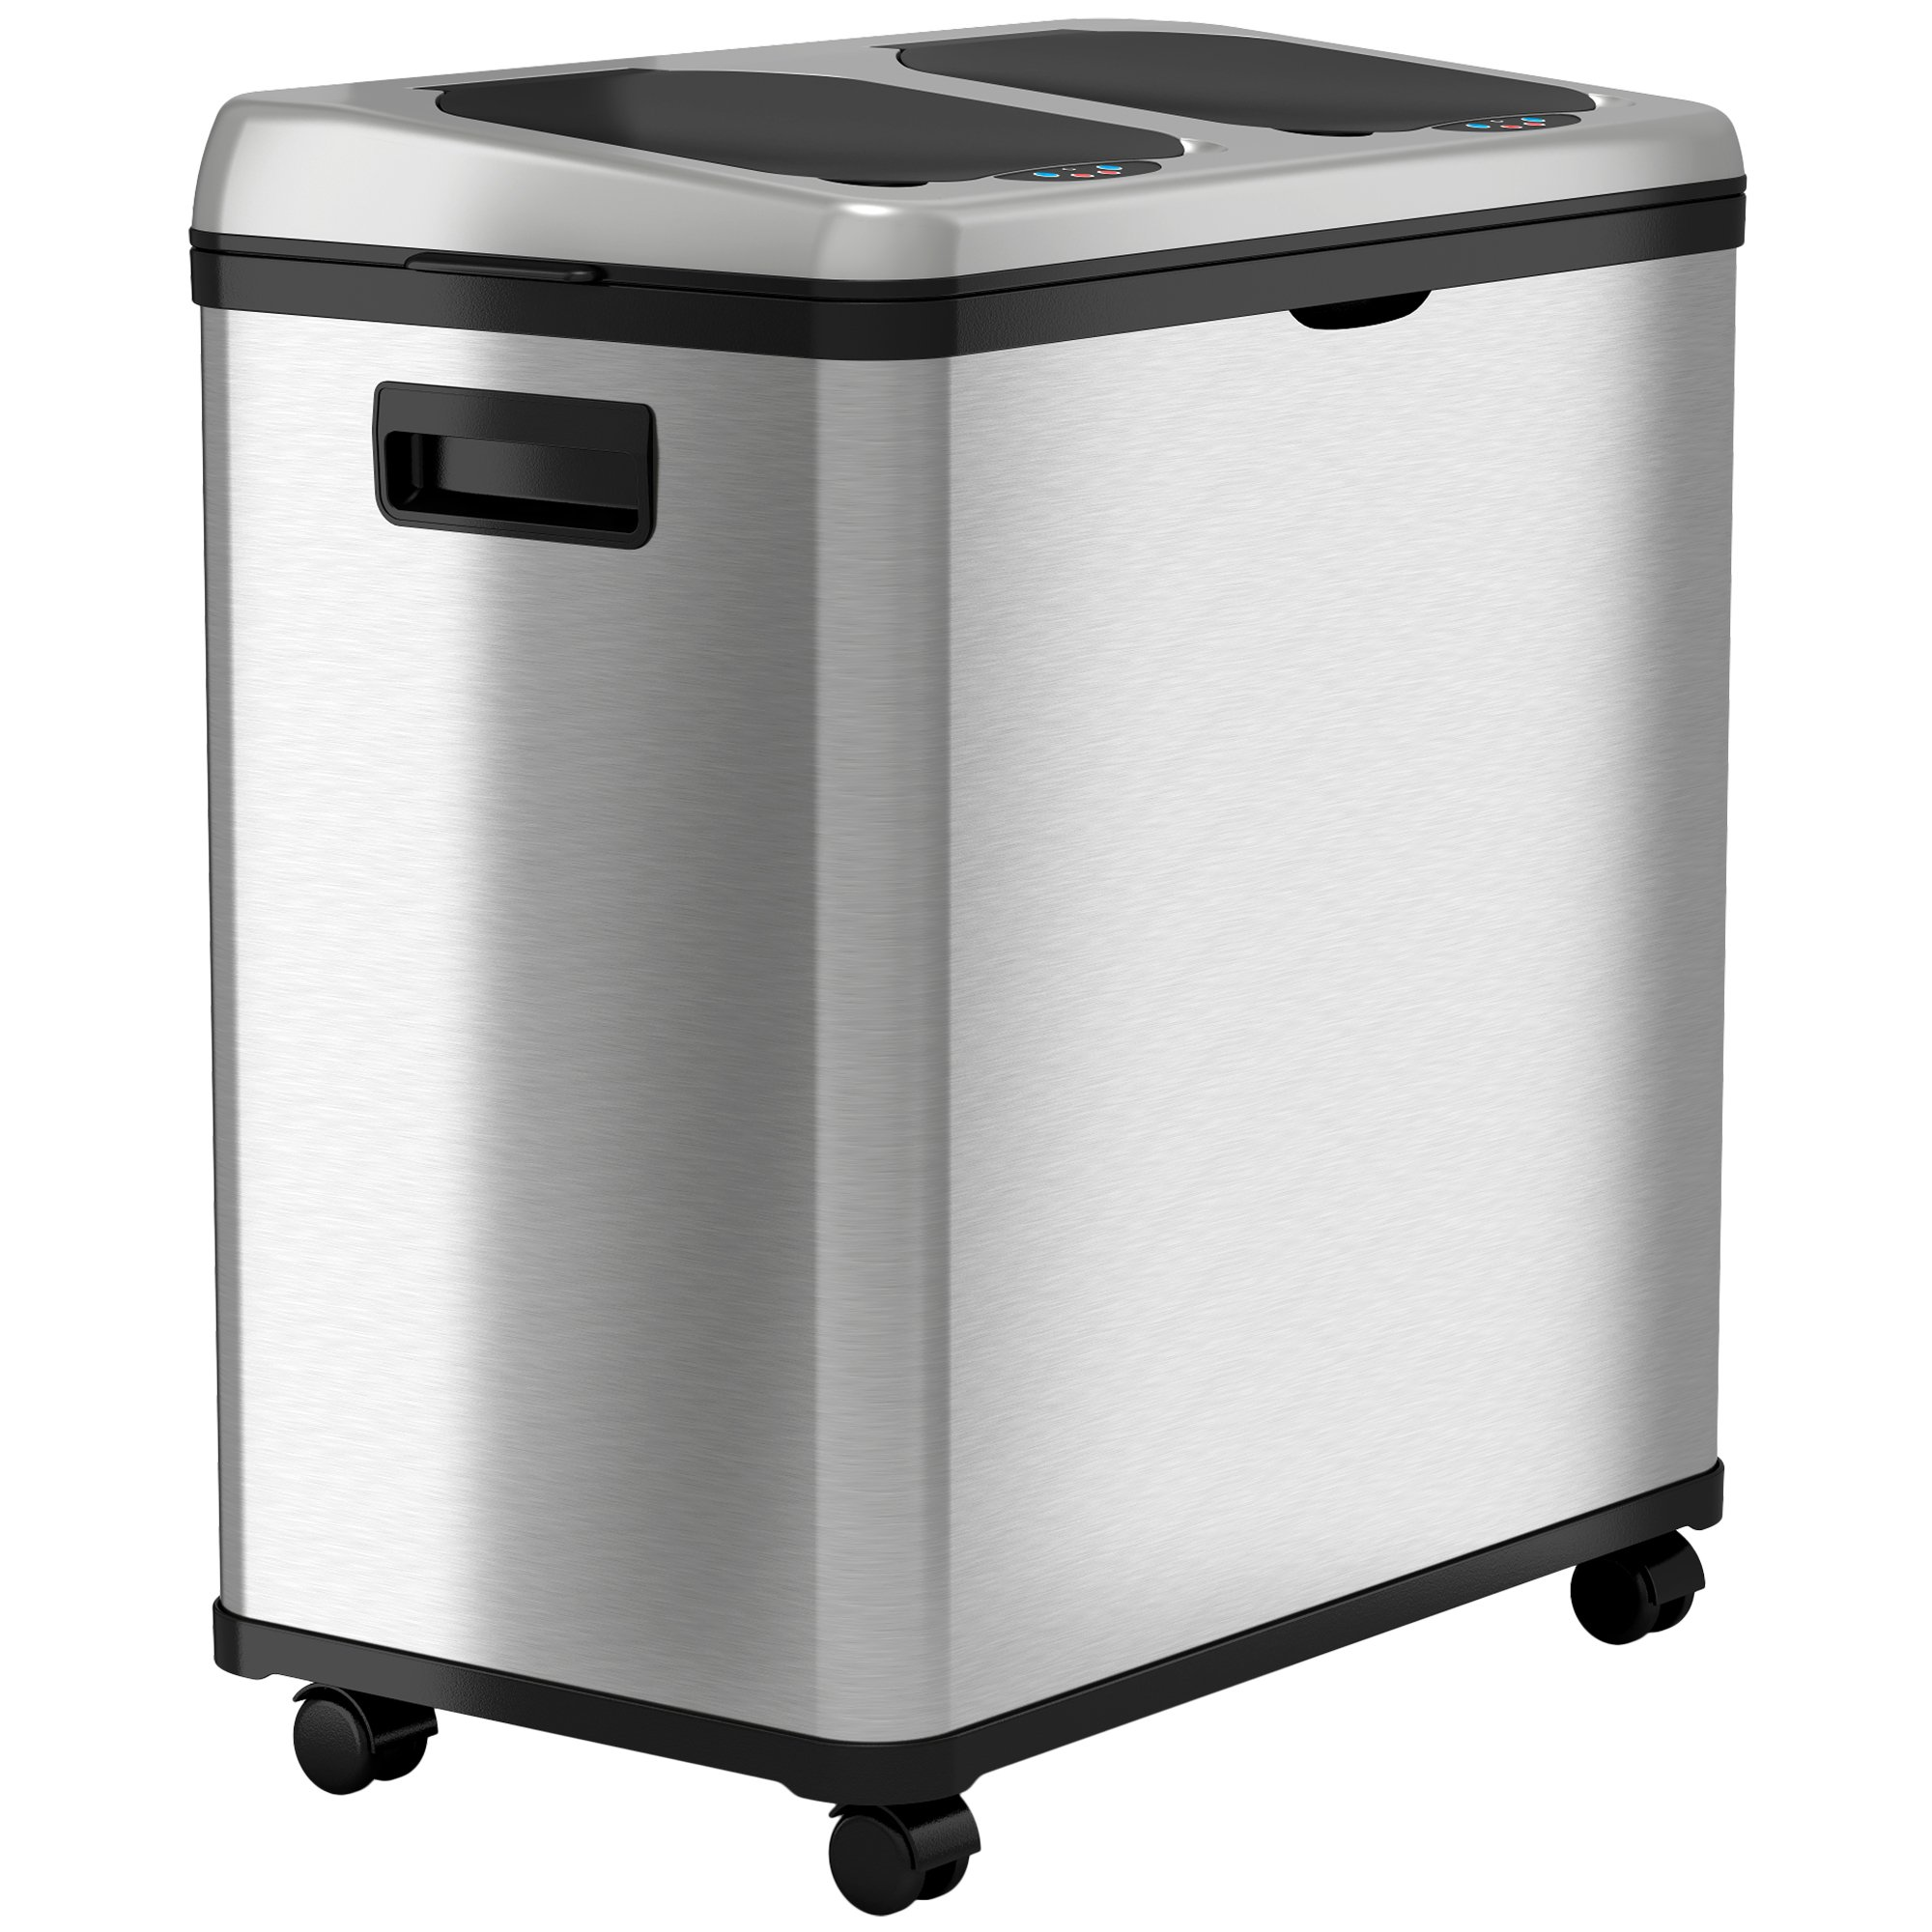 iTouchless Stainless Steel Trash Can / Recycler, Automatic Sensor Touchless Lid, Dual-Compartment (8 Gal each) – 16 Gal / 61 L by iTouchless